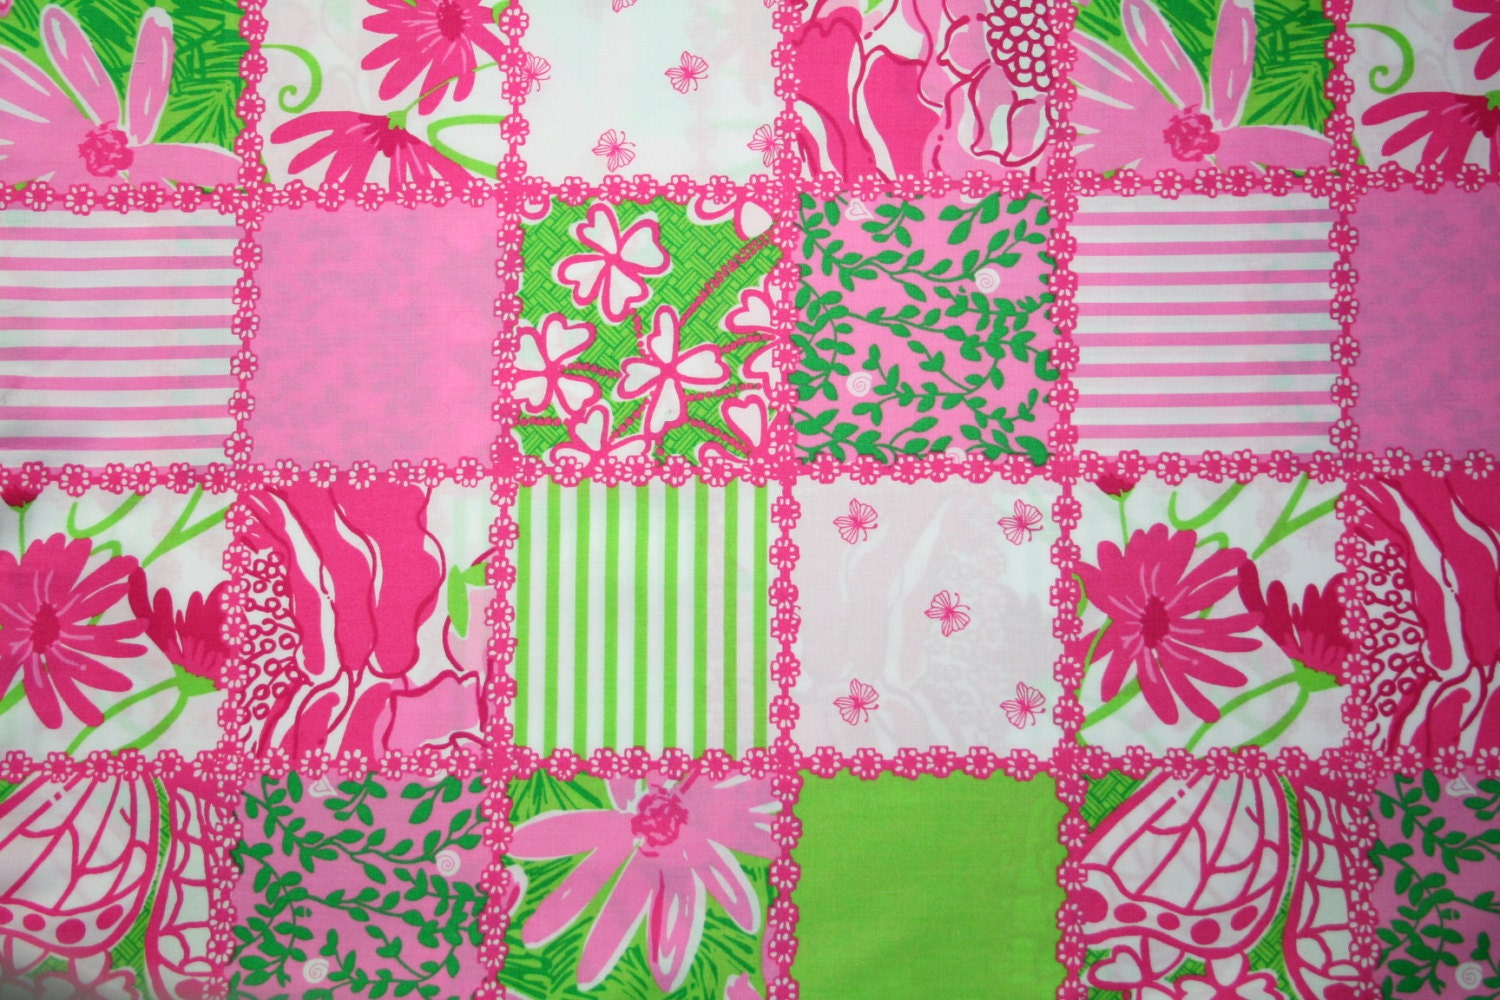 lilly pulitzer fabric patchtastic lilly pink green by